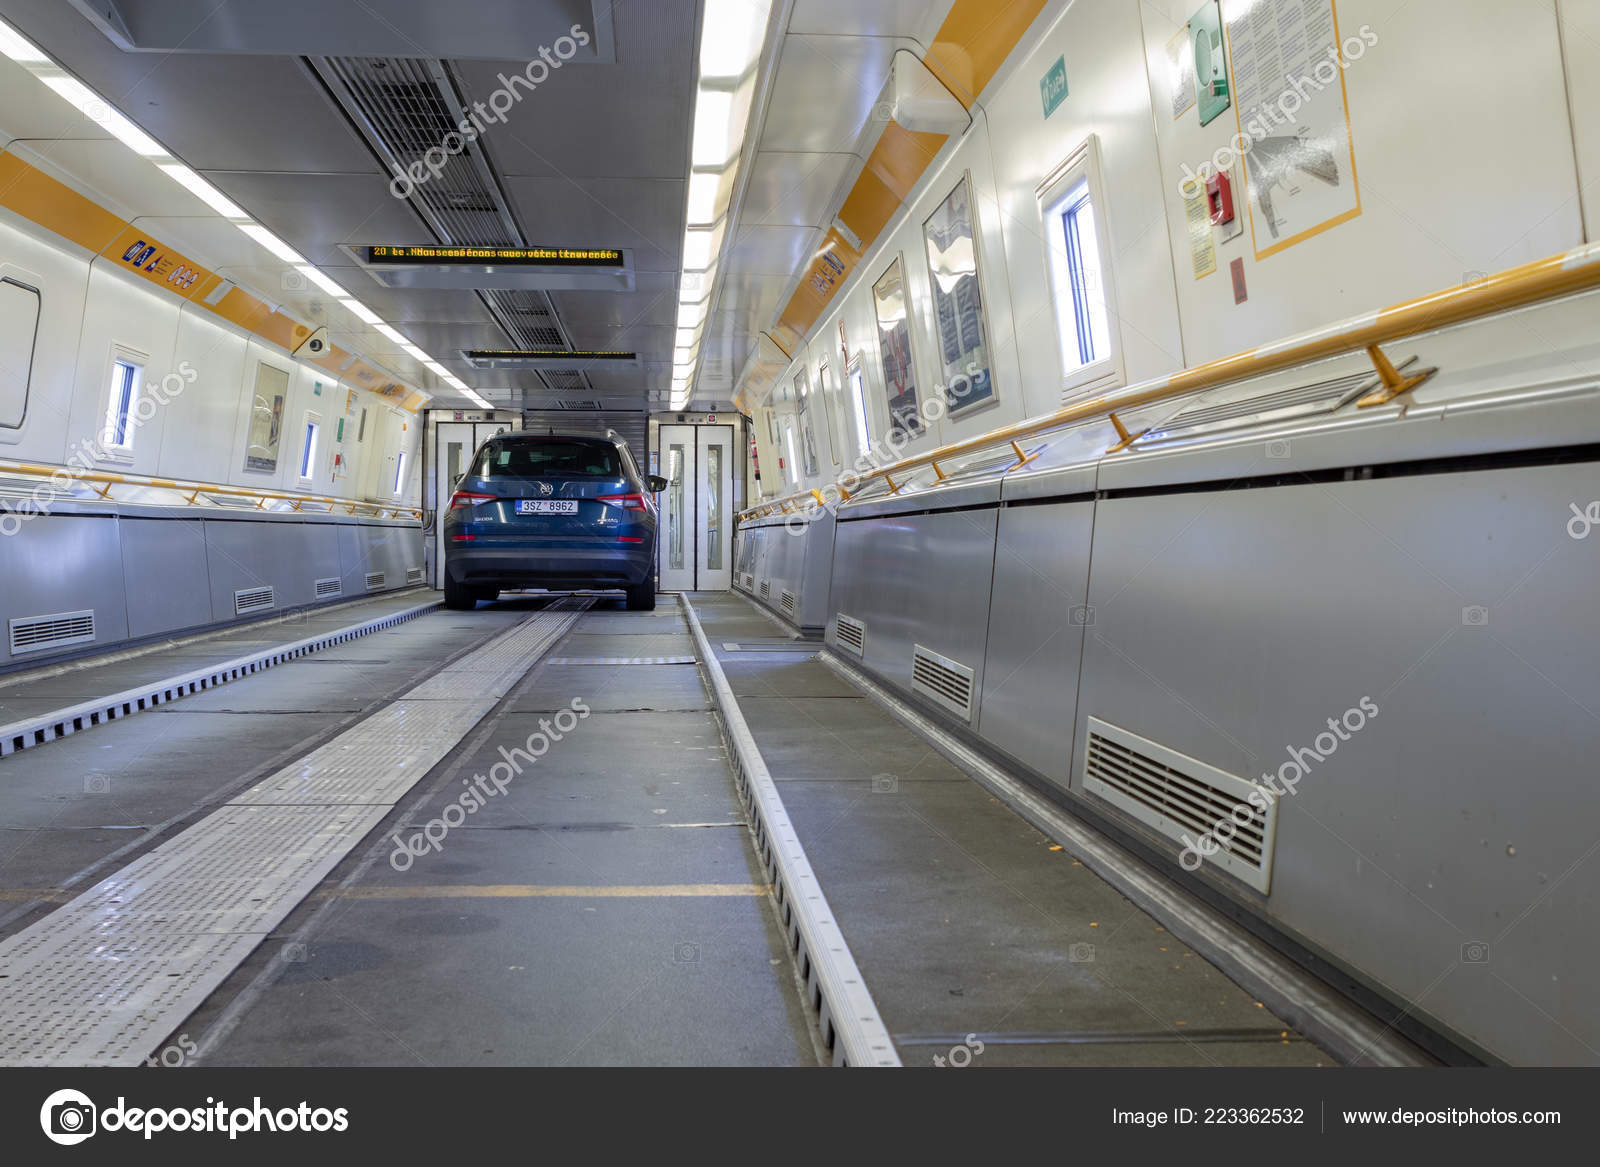 Eurotunnel Train France July 2018 Blue Car Board Eurotunnel Train